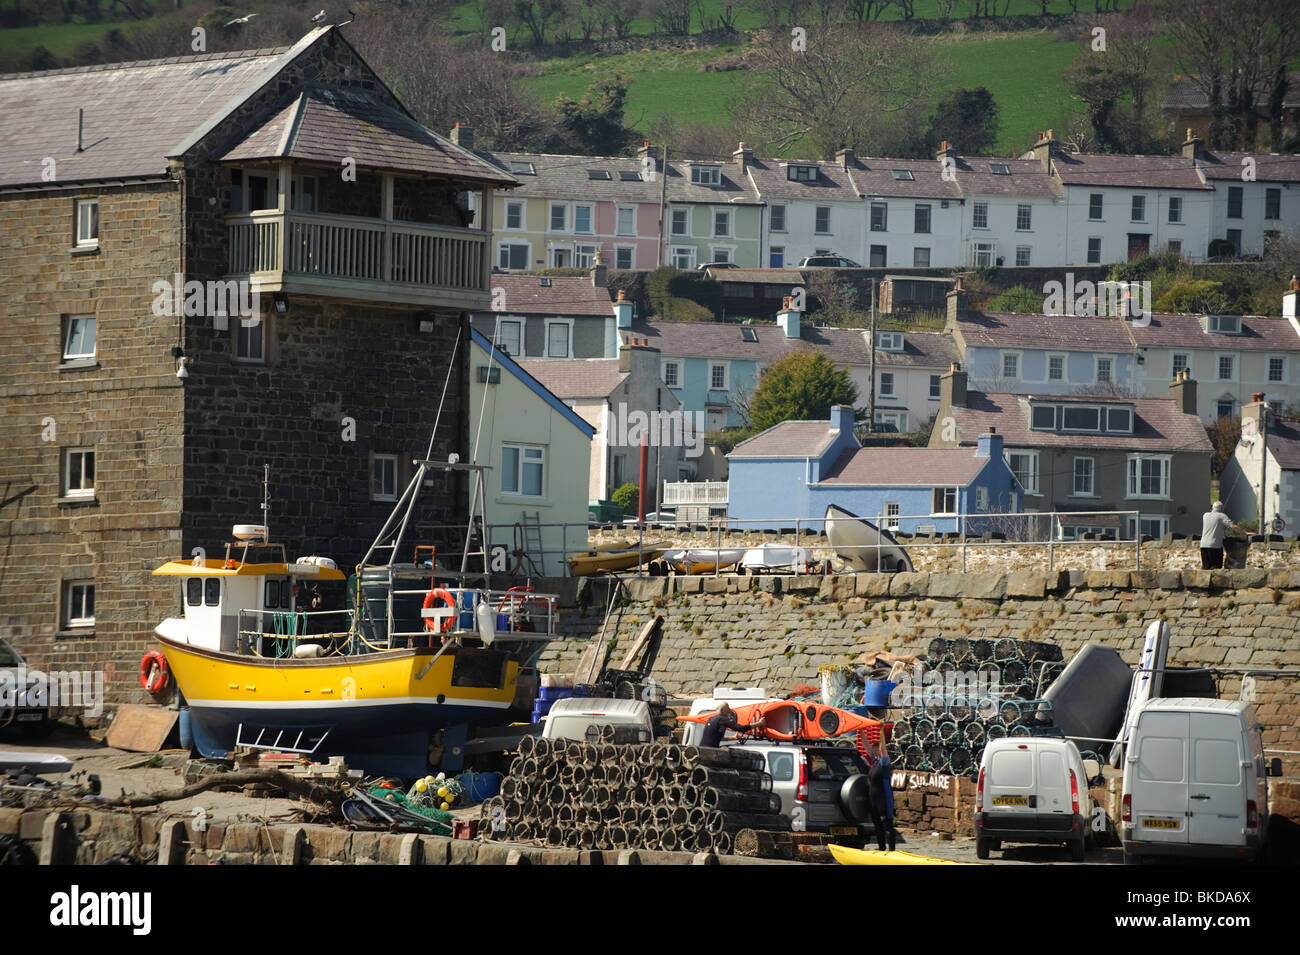 New Quay, a small village town on Cardigan Bay, once the home of Dylan Thomas, Ceredigion, Wales UK Stock Photo